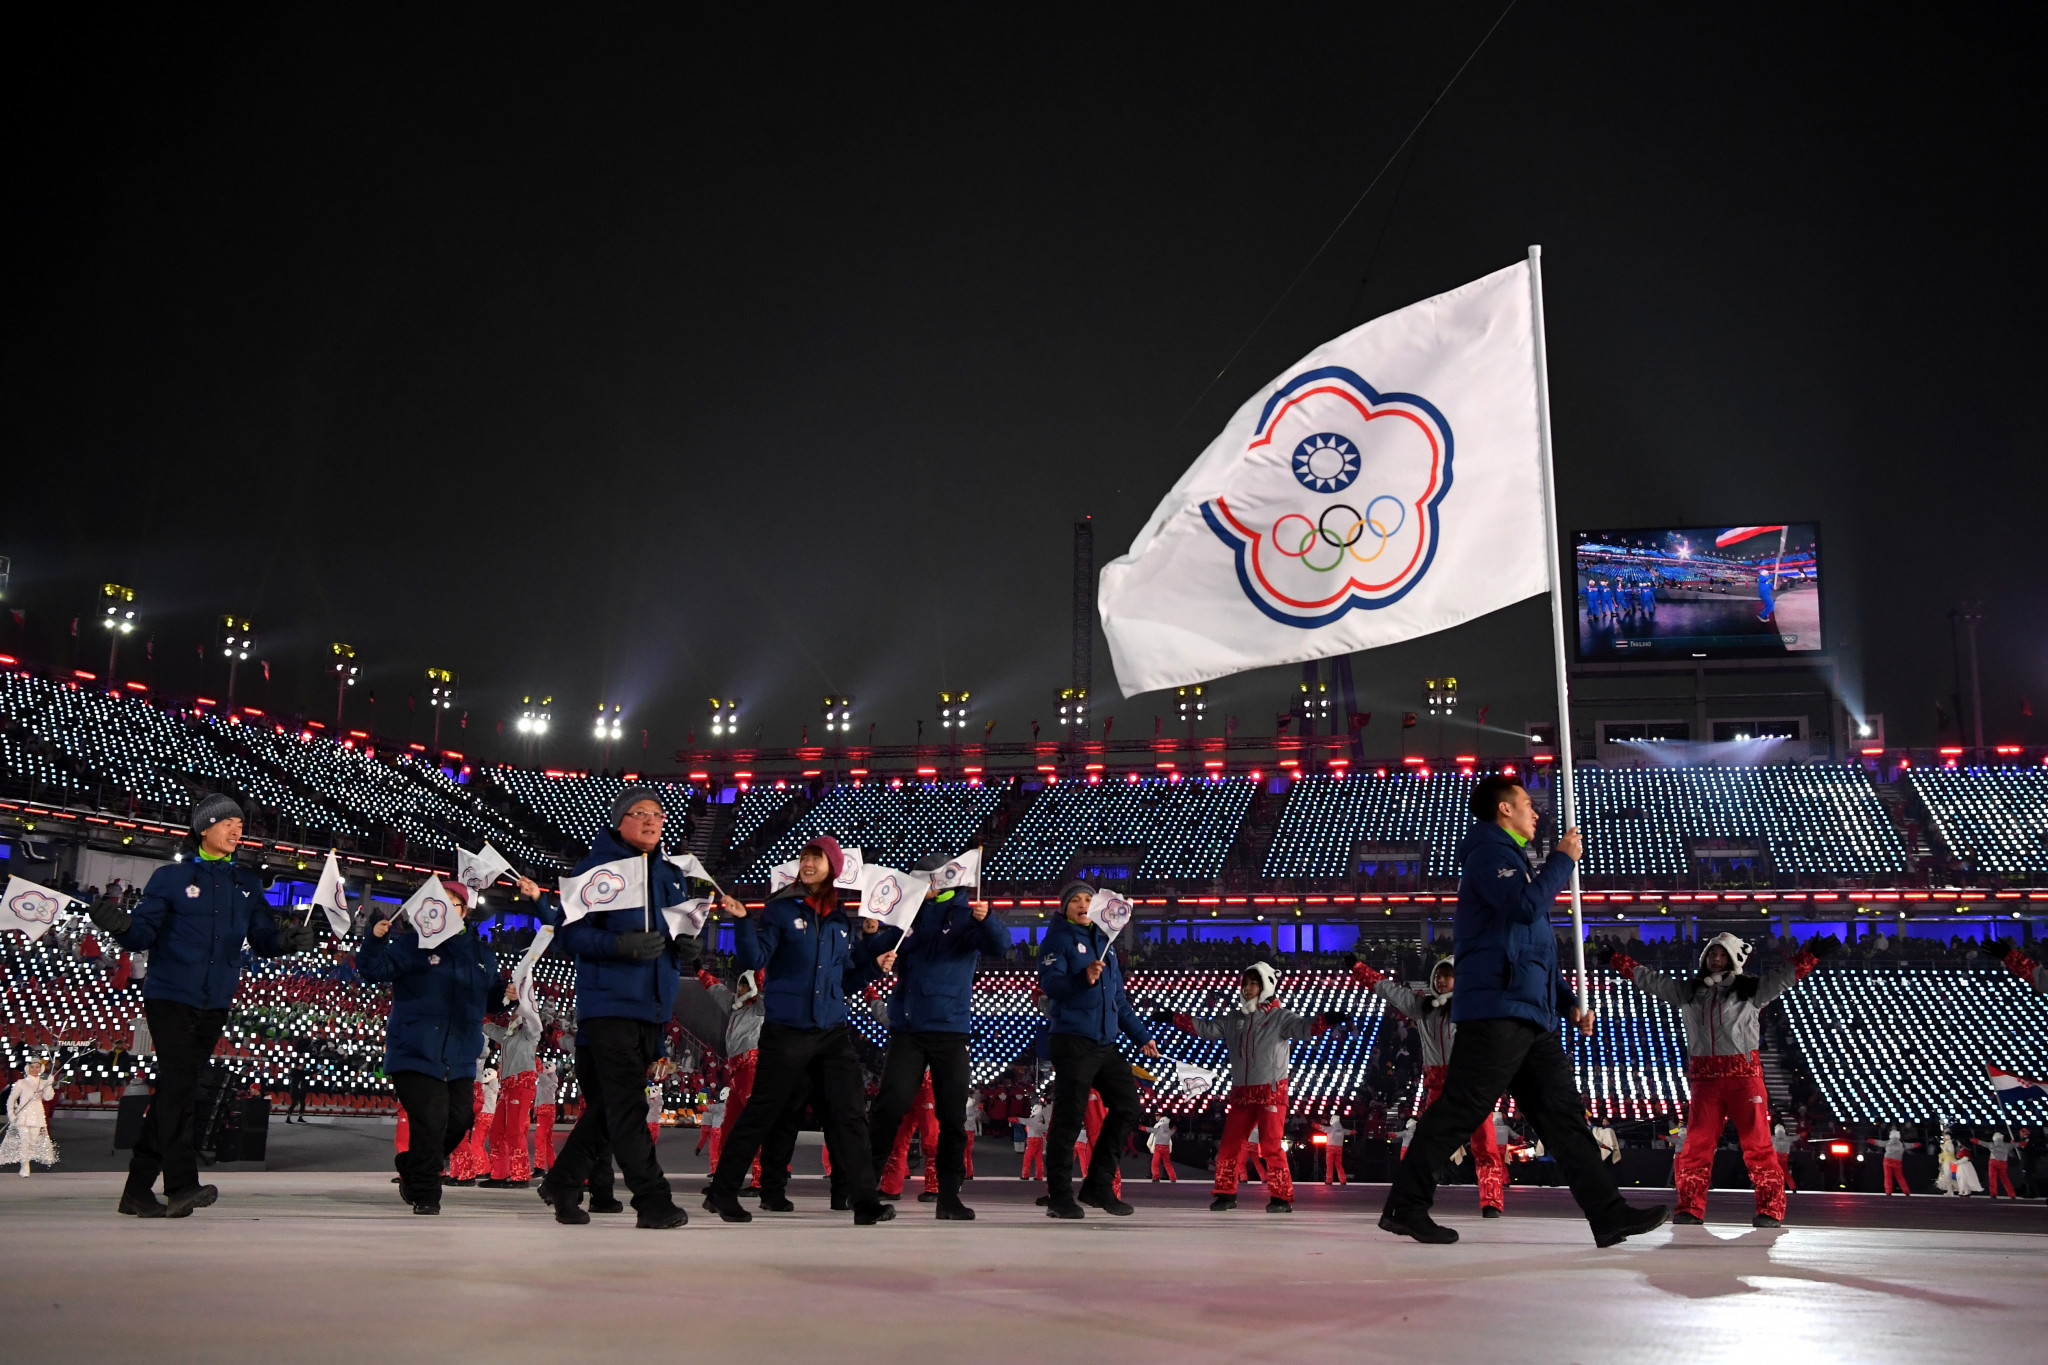 Petition submitted calling for referendum on Taiwan dropping Chinese Taipei name at Tokyo 2020